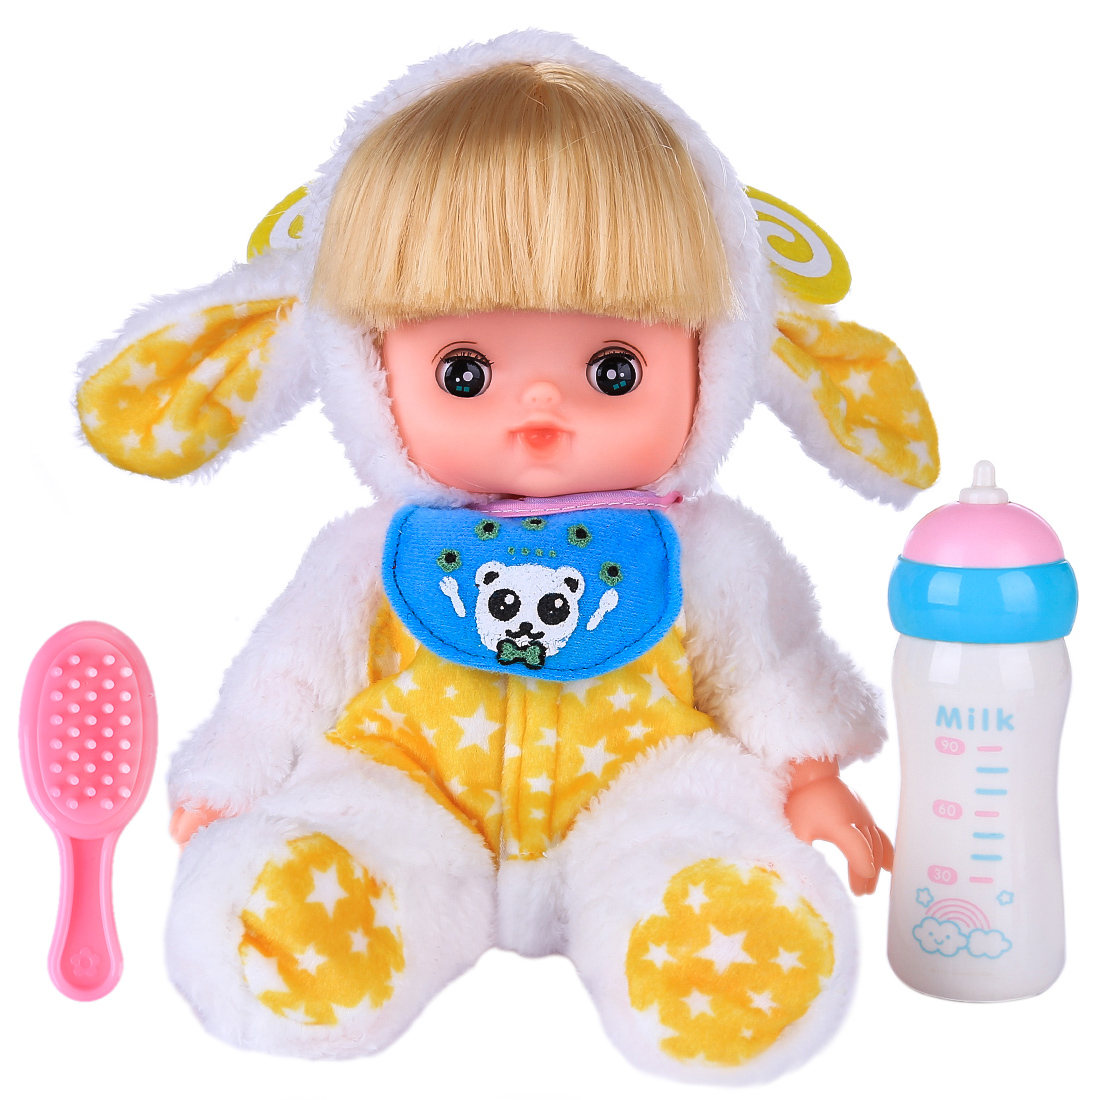 Baby Doll Toys Lifelike Pretend Play Doll Set Makeup Hairstyle Play Toy Beauty Pretend Play For Kids Birthday Gift- White Yellow